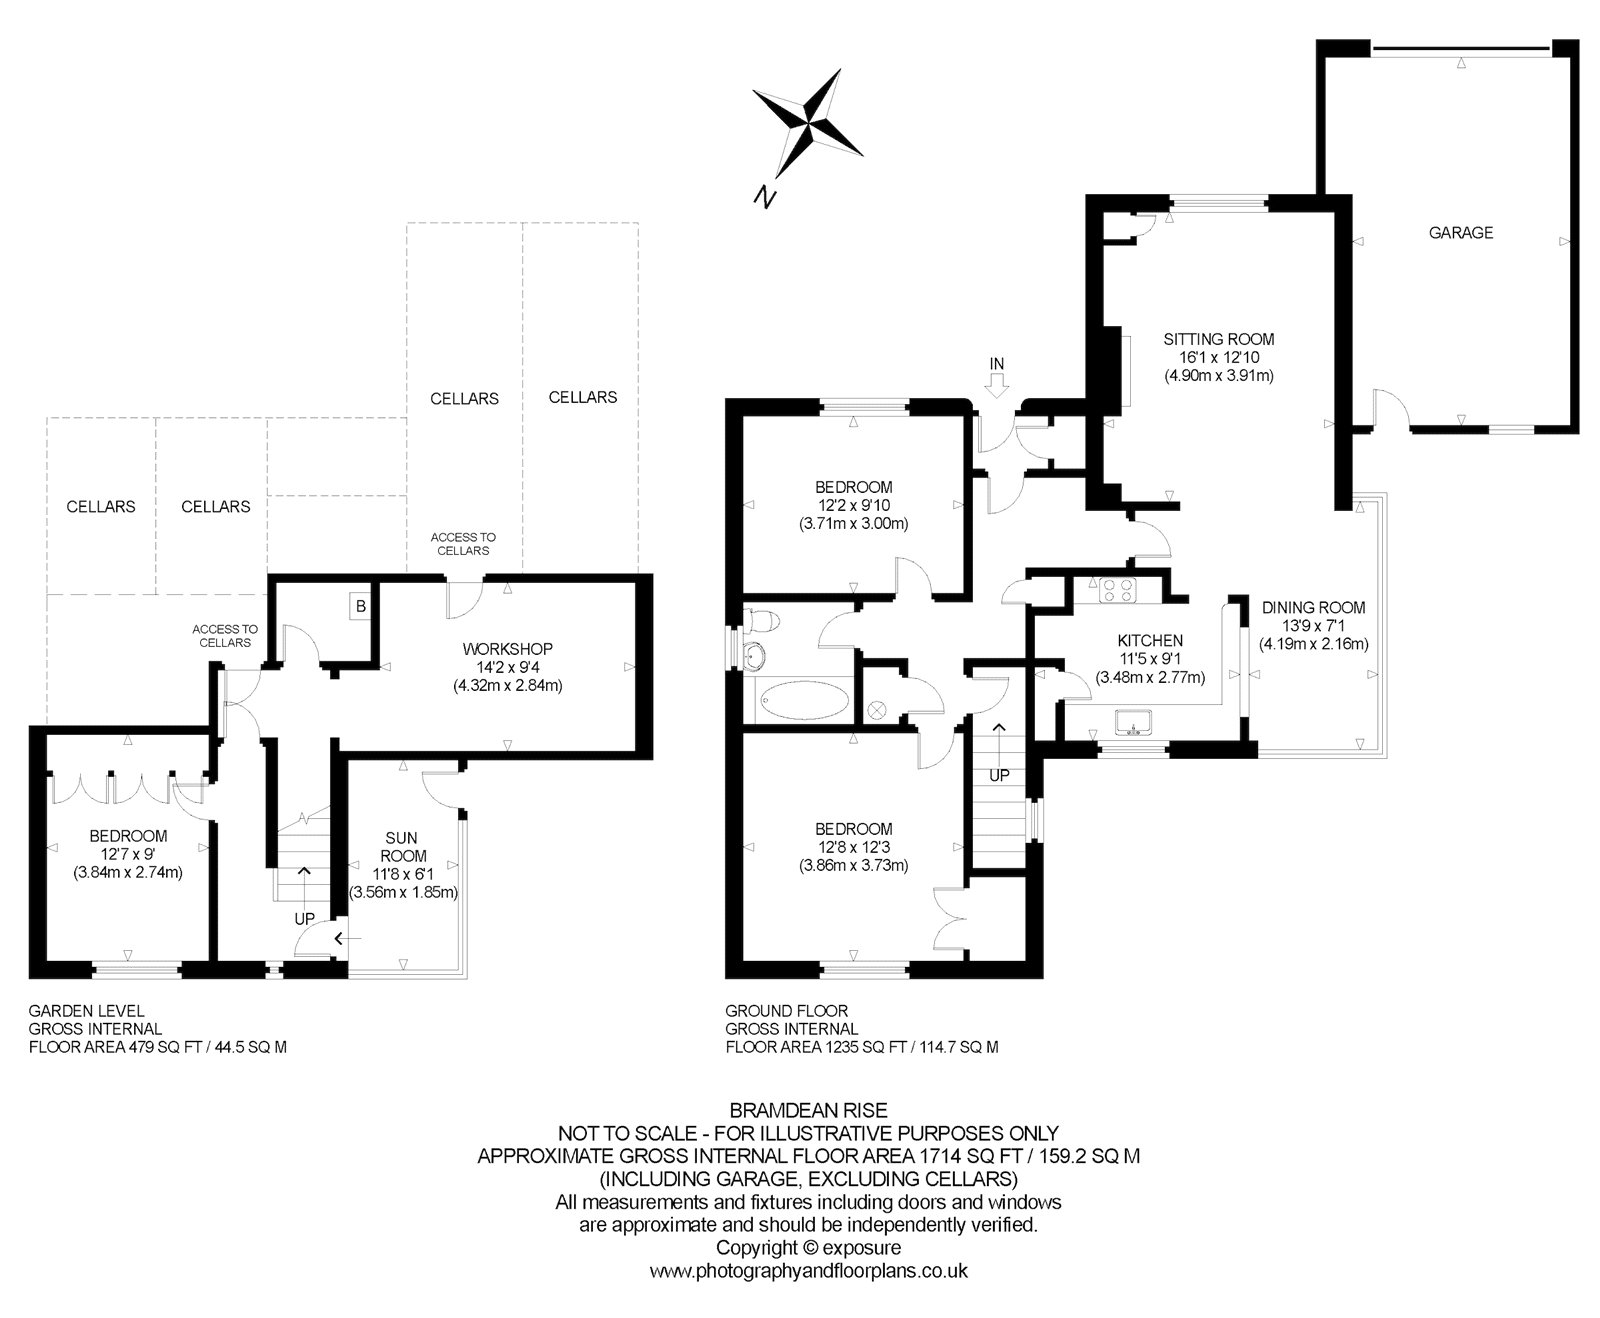 Floorplans for Bramdean Rise, Edinburgh, Midlothian, EH10